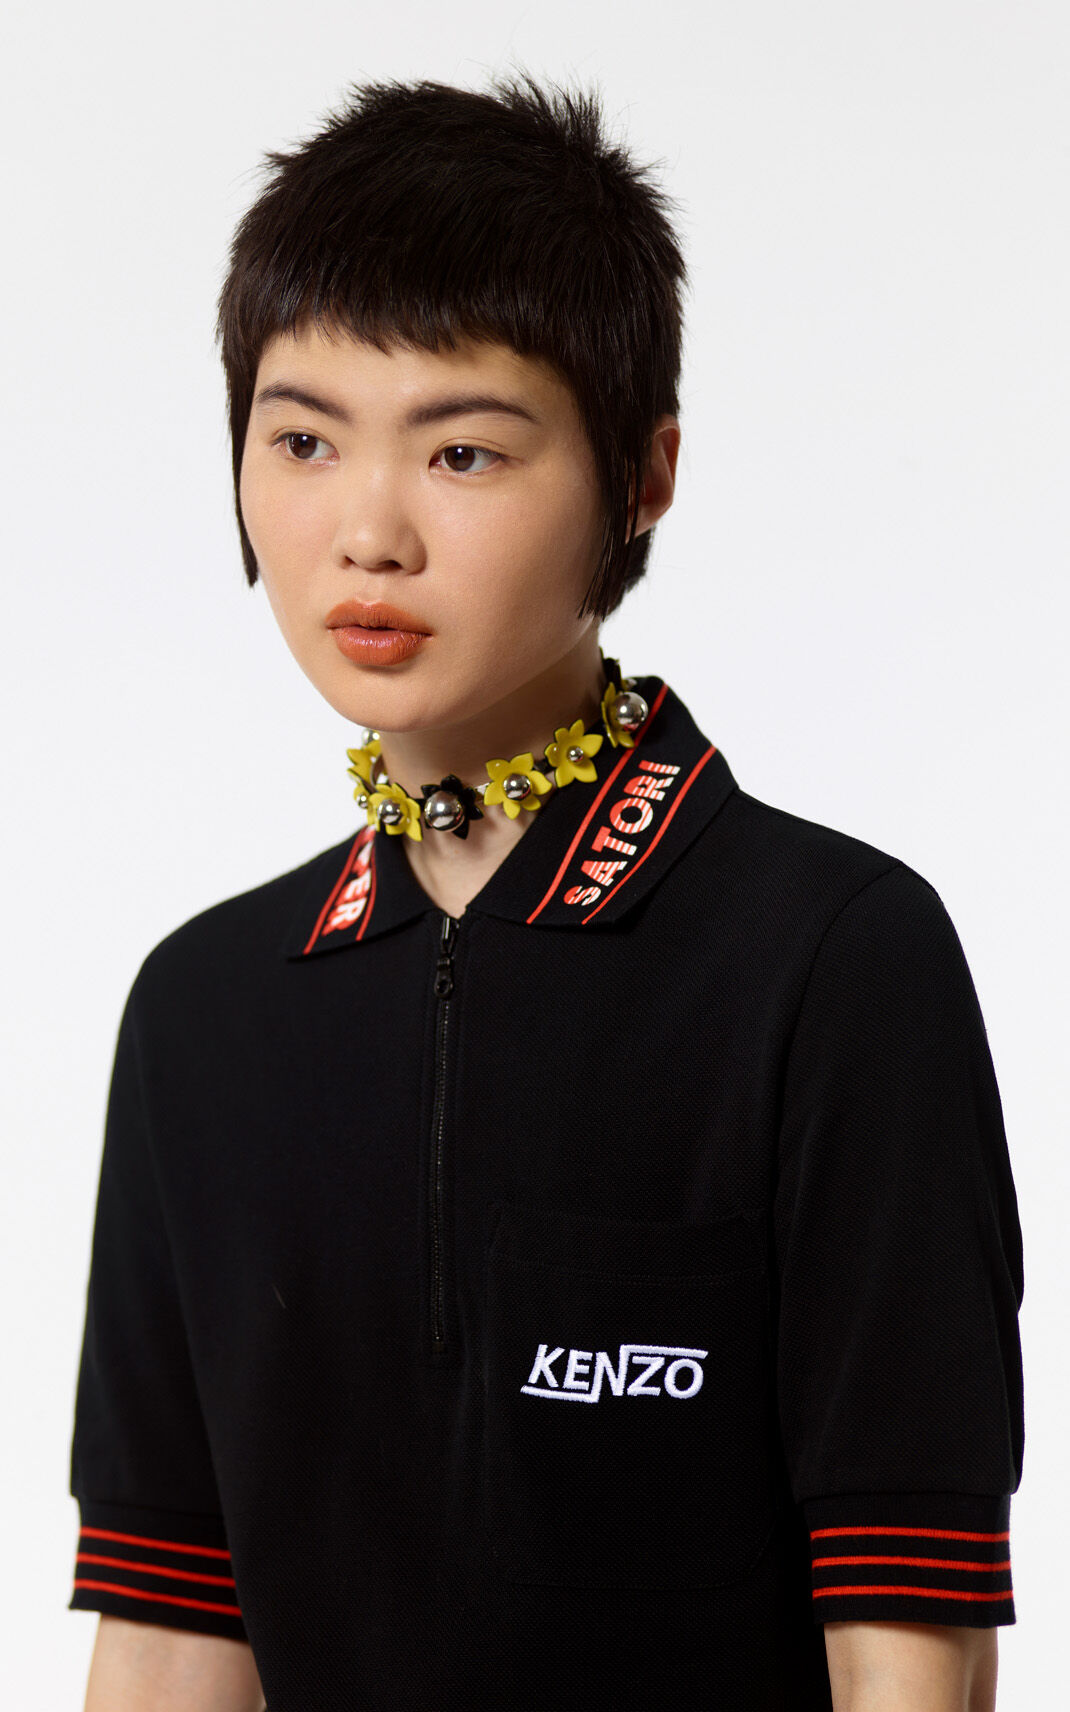 BLACK 'Hyper Kenzo' polo dress for women